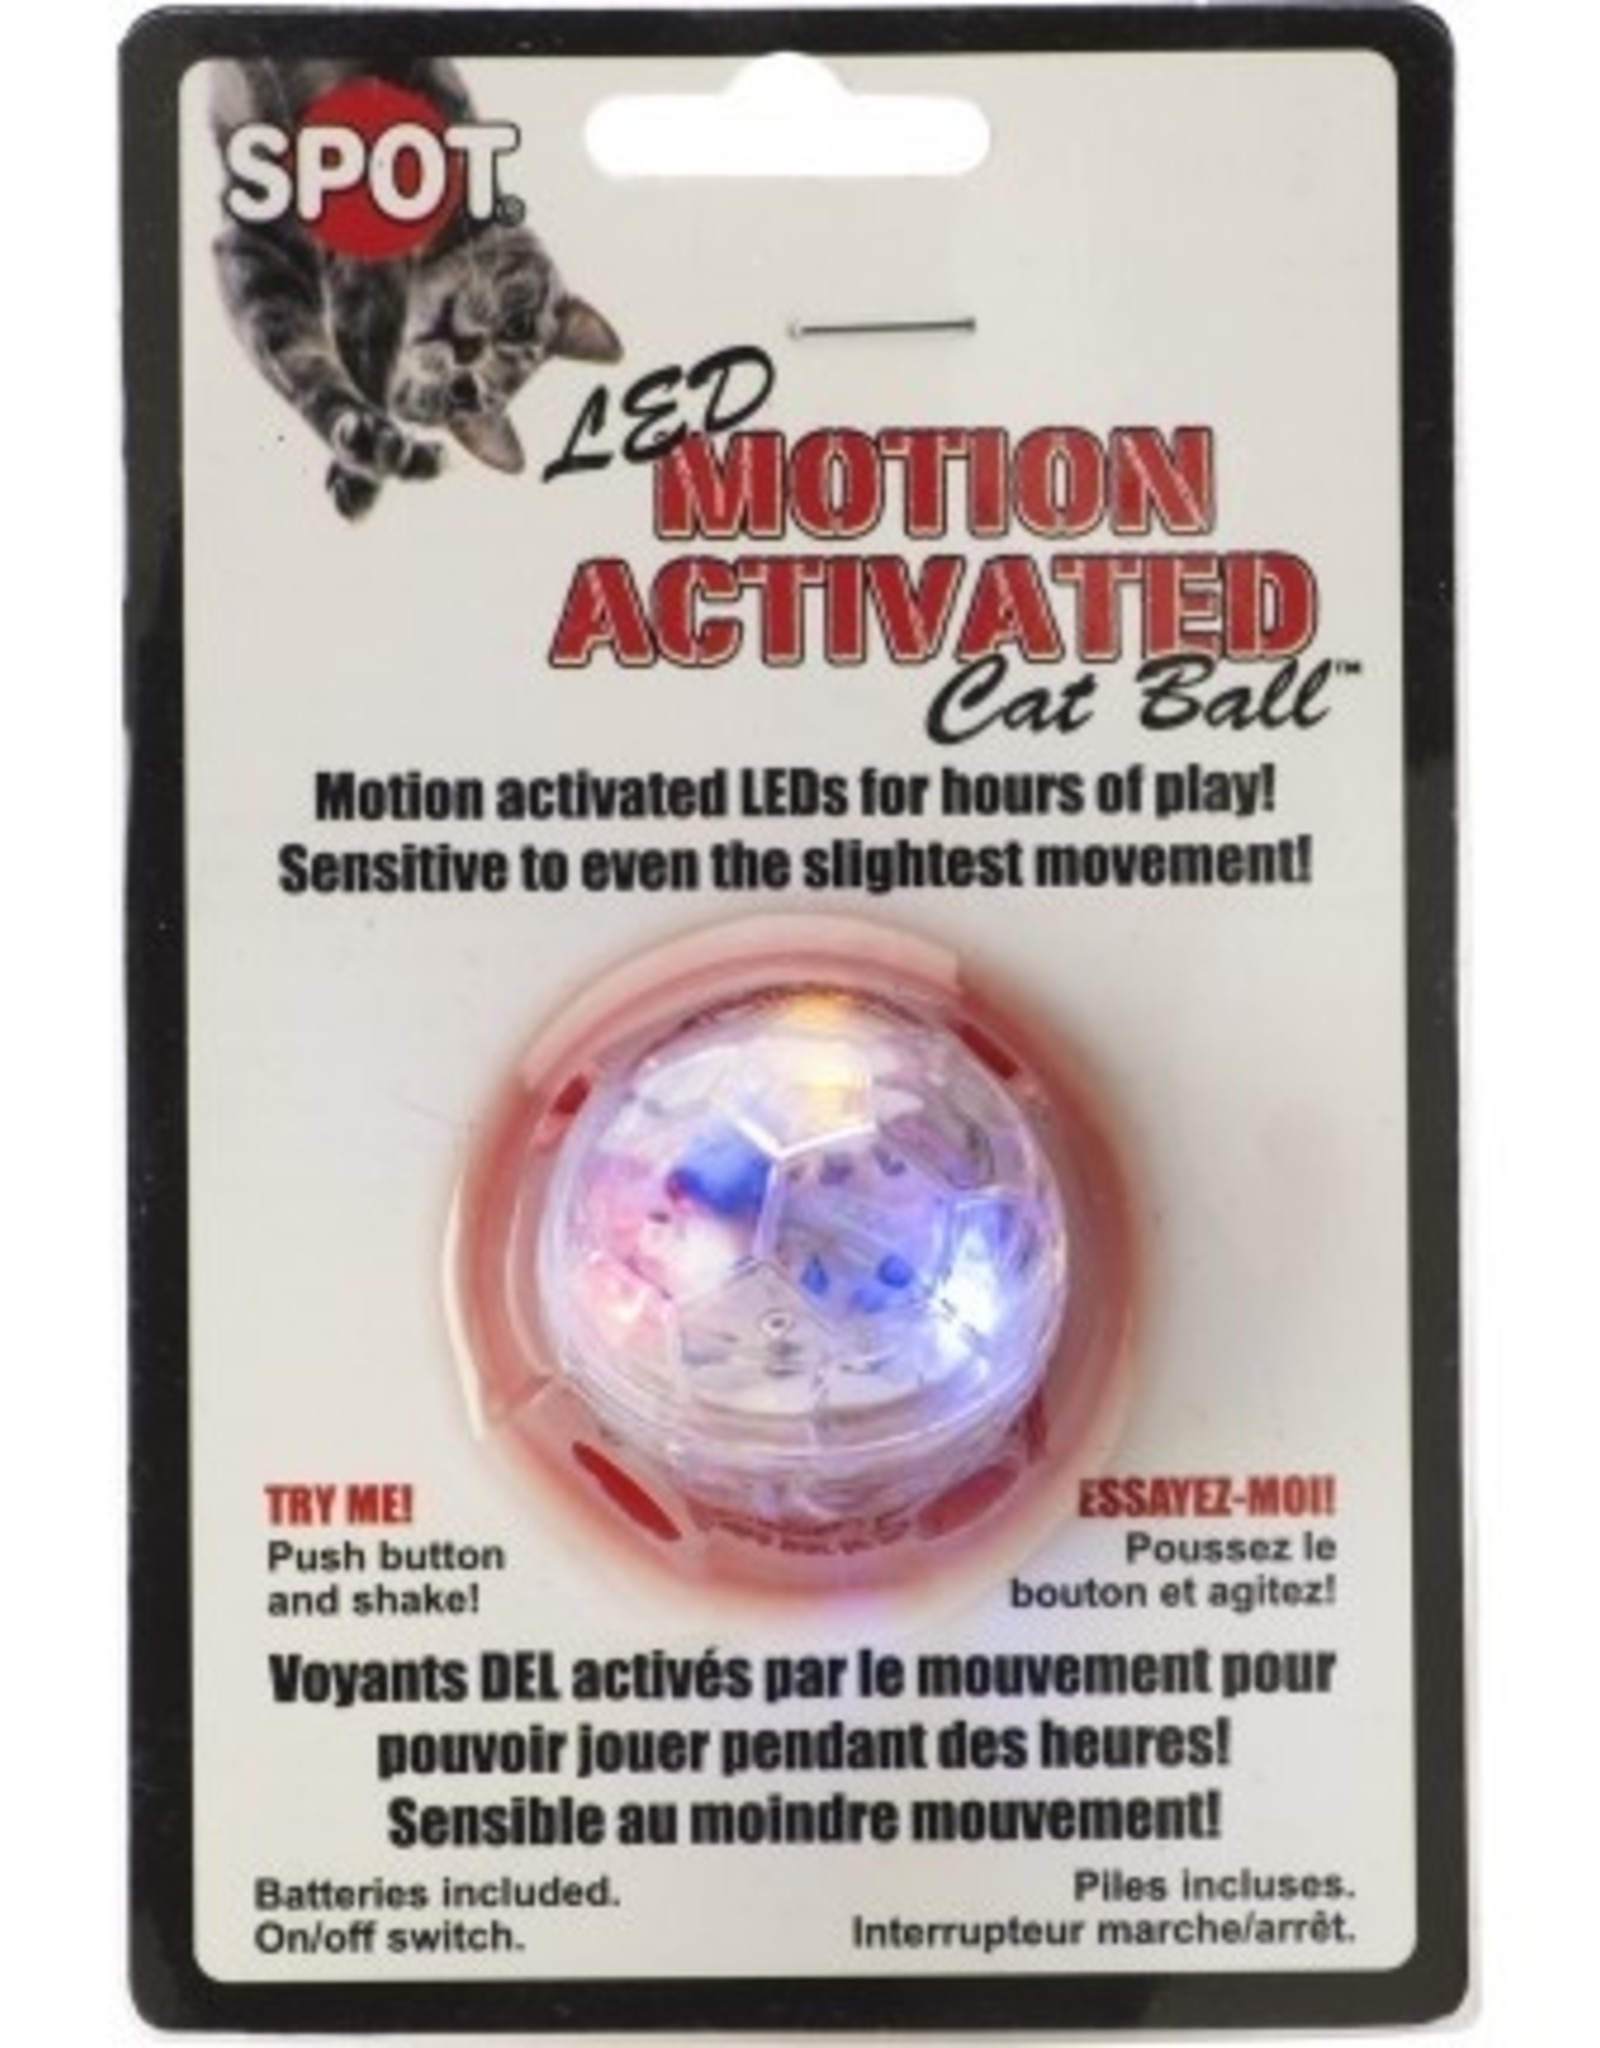 Ethical Pet / Spot Spot LED Motion Activated Cat Ball